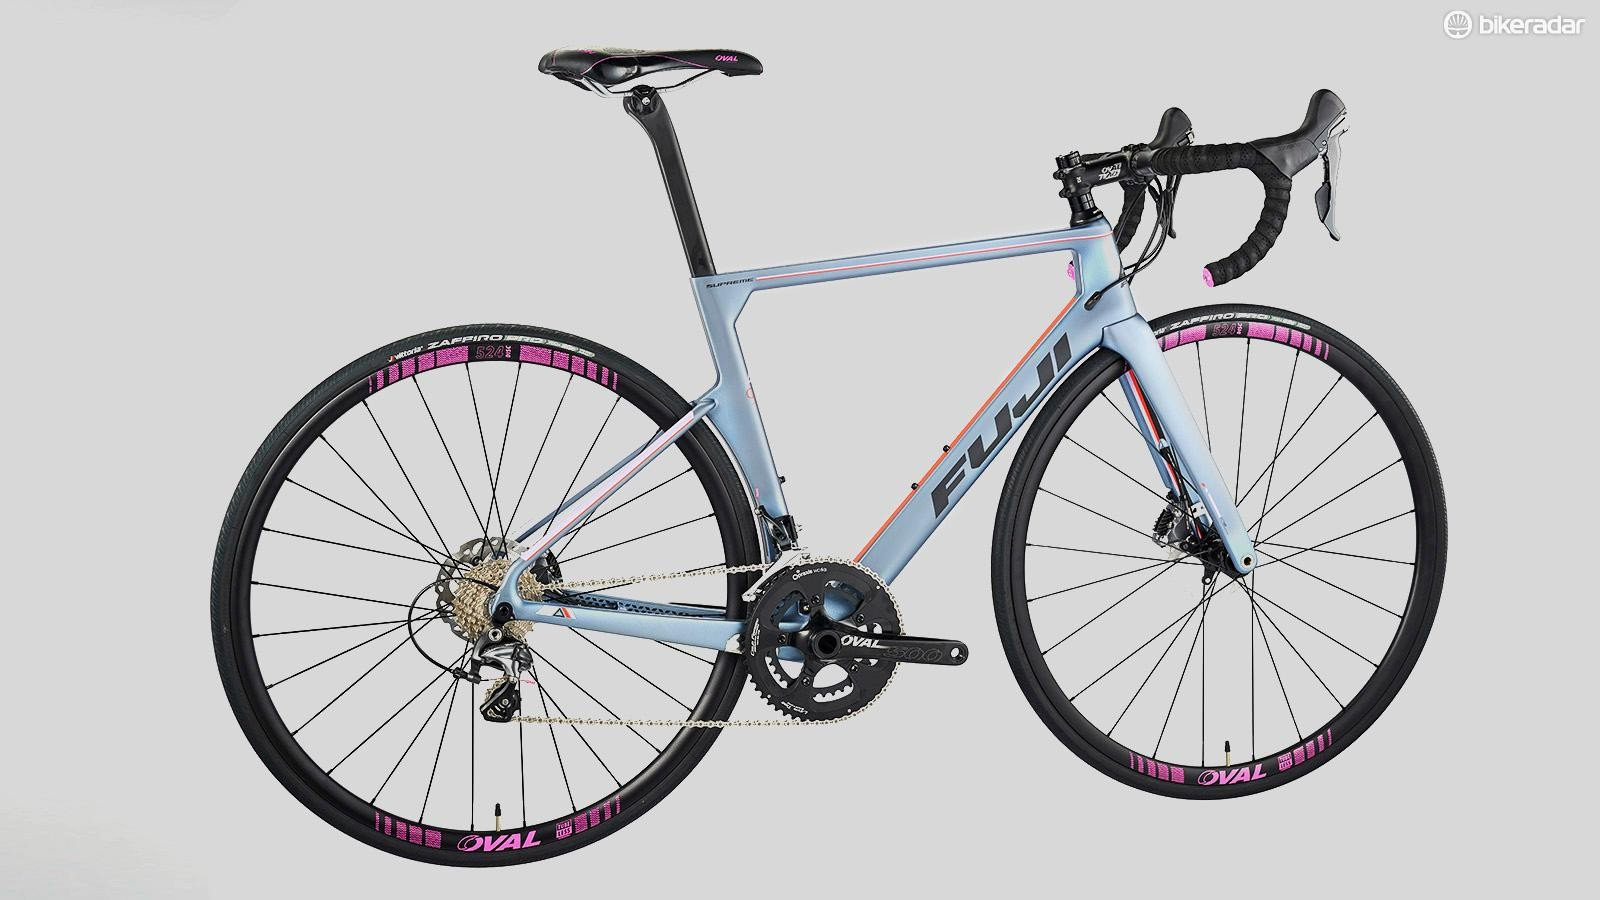 Side-on photo of the Fuji Supreme 2.3 women's road bike in a grey frame with pink details